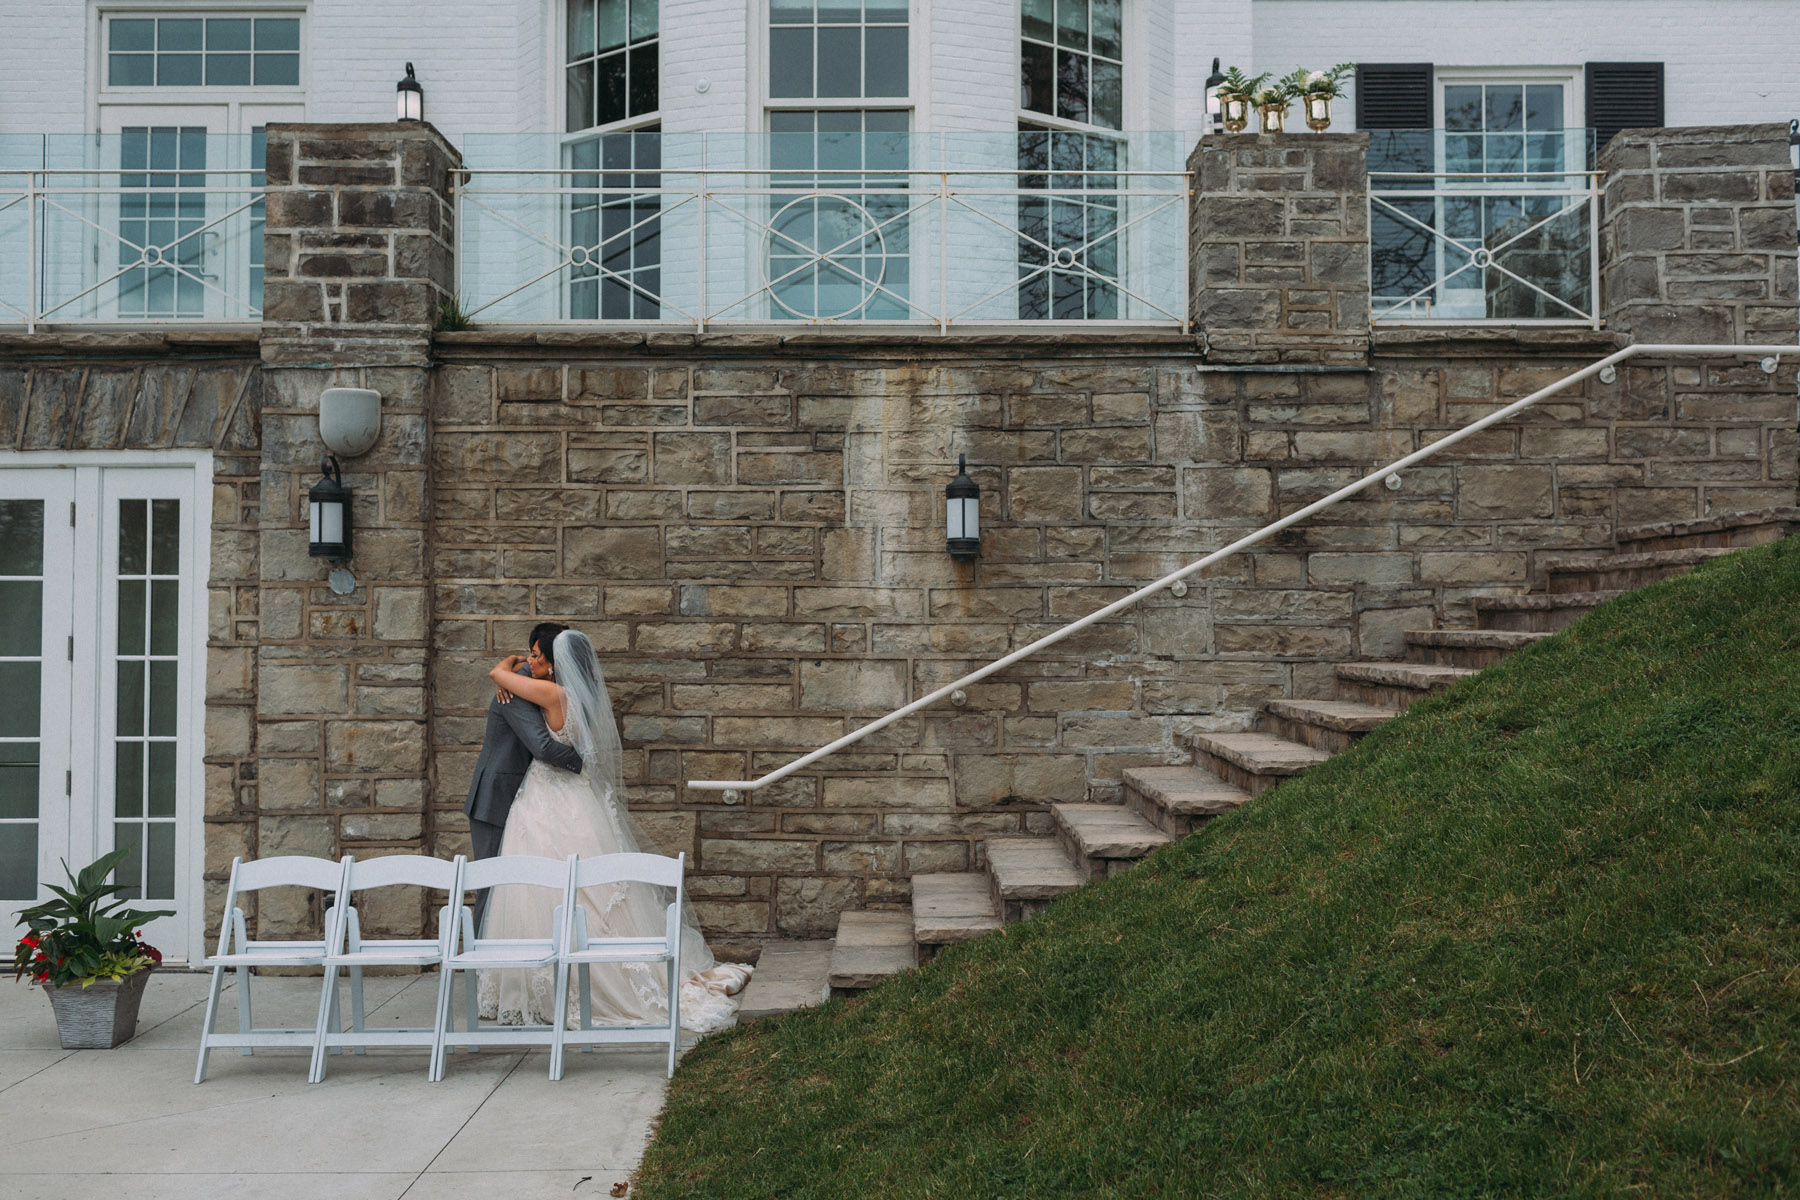 Harding-Waterfront-Estate-Mississauga-wedding-photography-by-Sam-Wong-of-Artanis-Collective_13.jpg